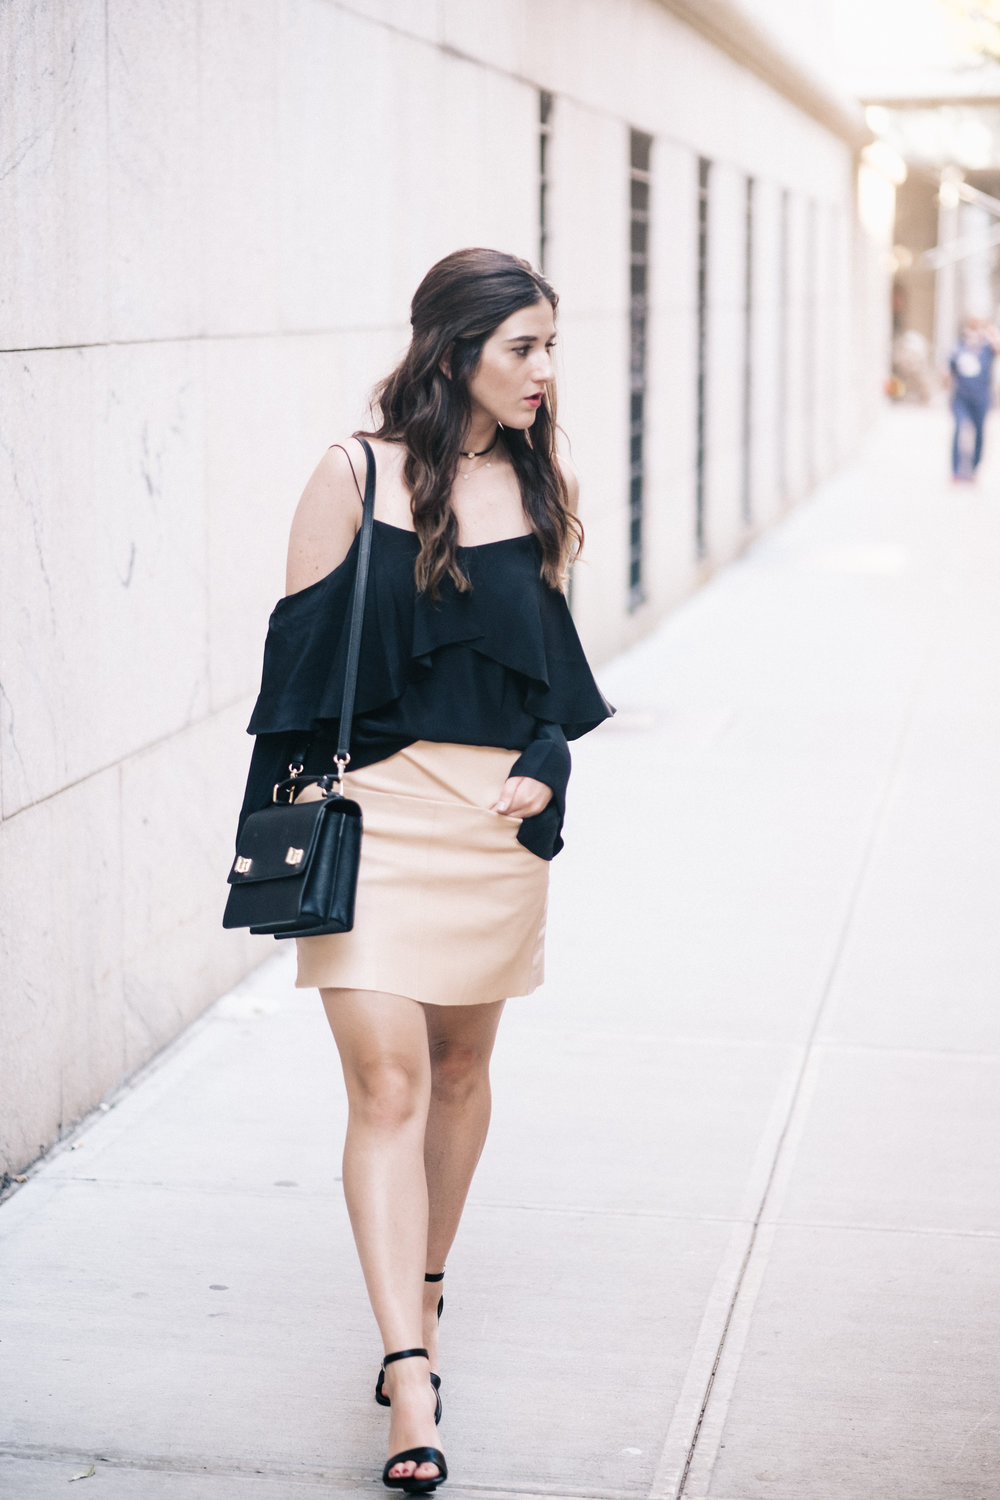 The+Perfect+Everyday+Bag+Henri+Bendel+Louboutins+&+Love+Fashion+Blog+Esther+Santer+NYC+Street+Style+Blogger+Outfit+OOTD+Trendy+Jay+Godfrey+Black+Cold+Shoulder+Top+Pink+Pleather+Skirt+Zara+Ivanka+Trump+Klover+Sandals+Inspo+Heels+Women+Purse+Girl+Hair.jpg